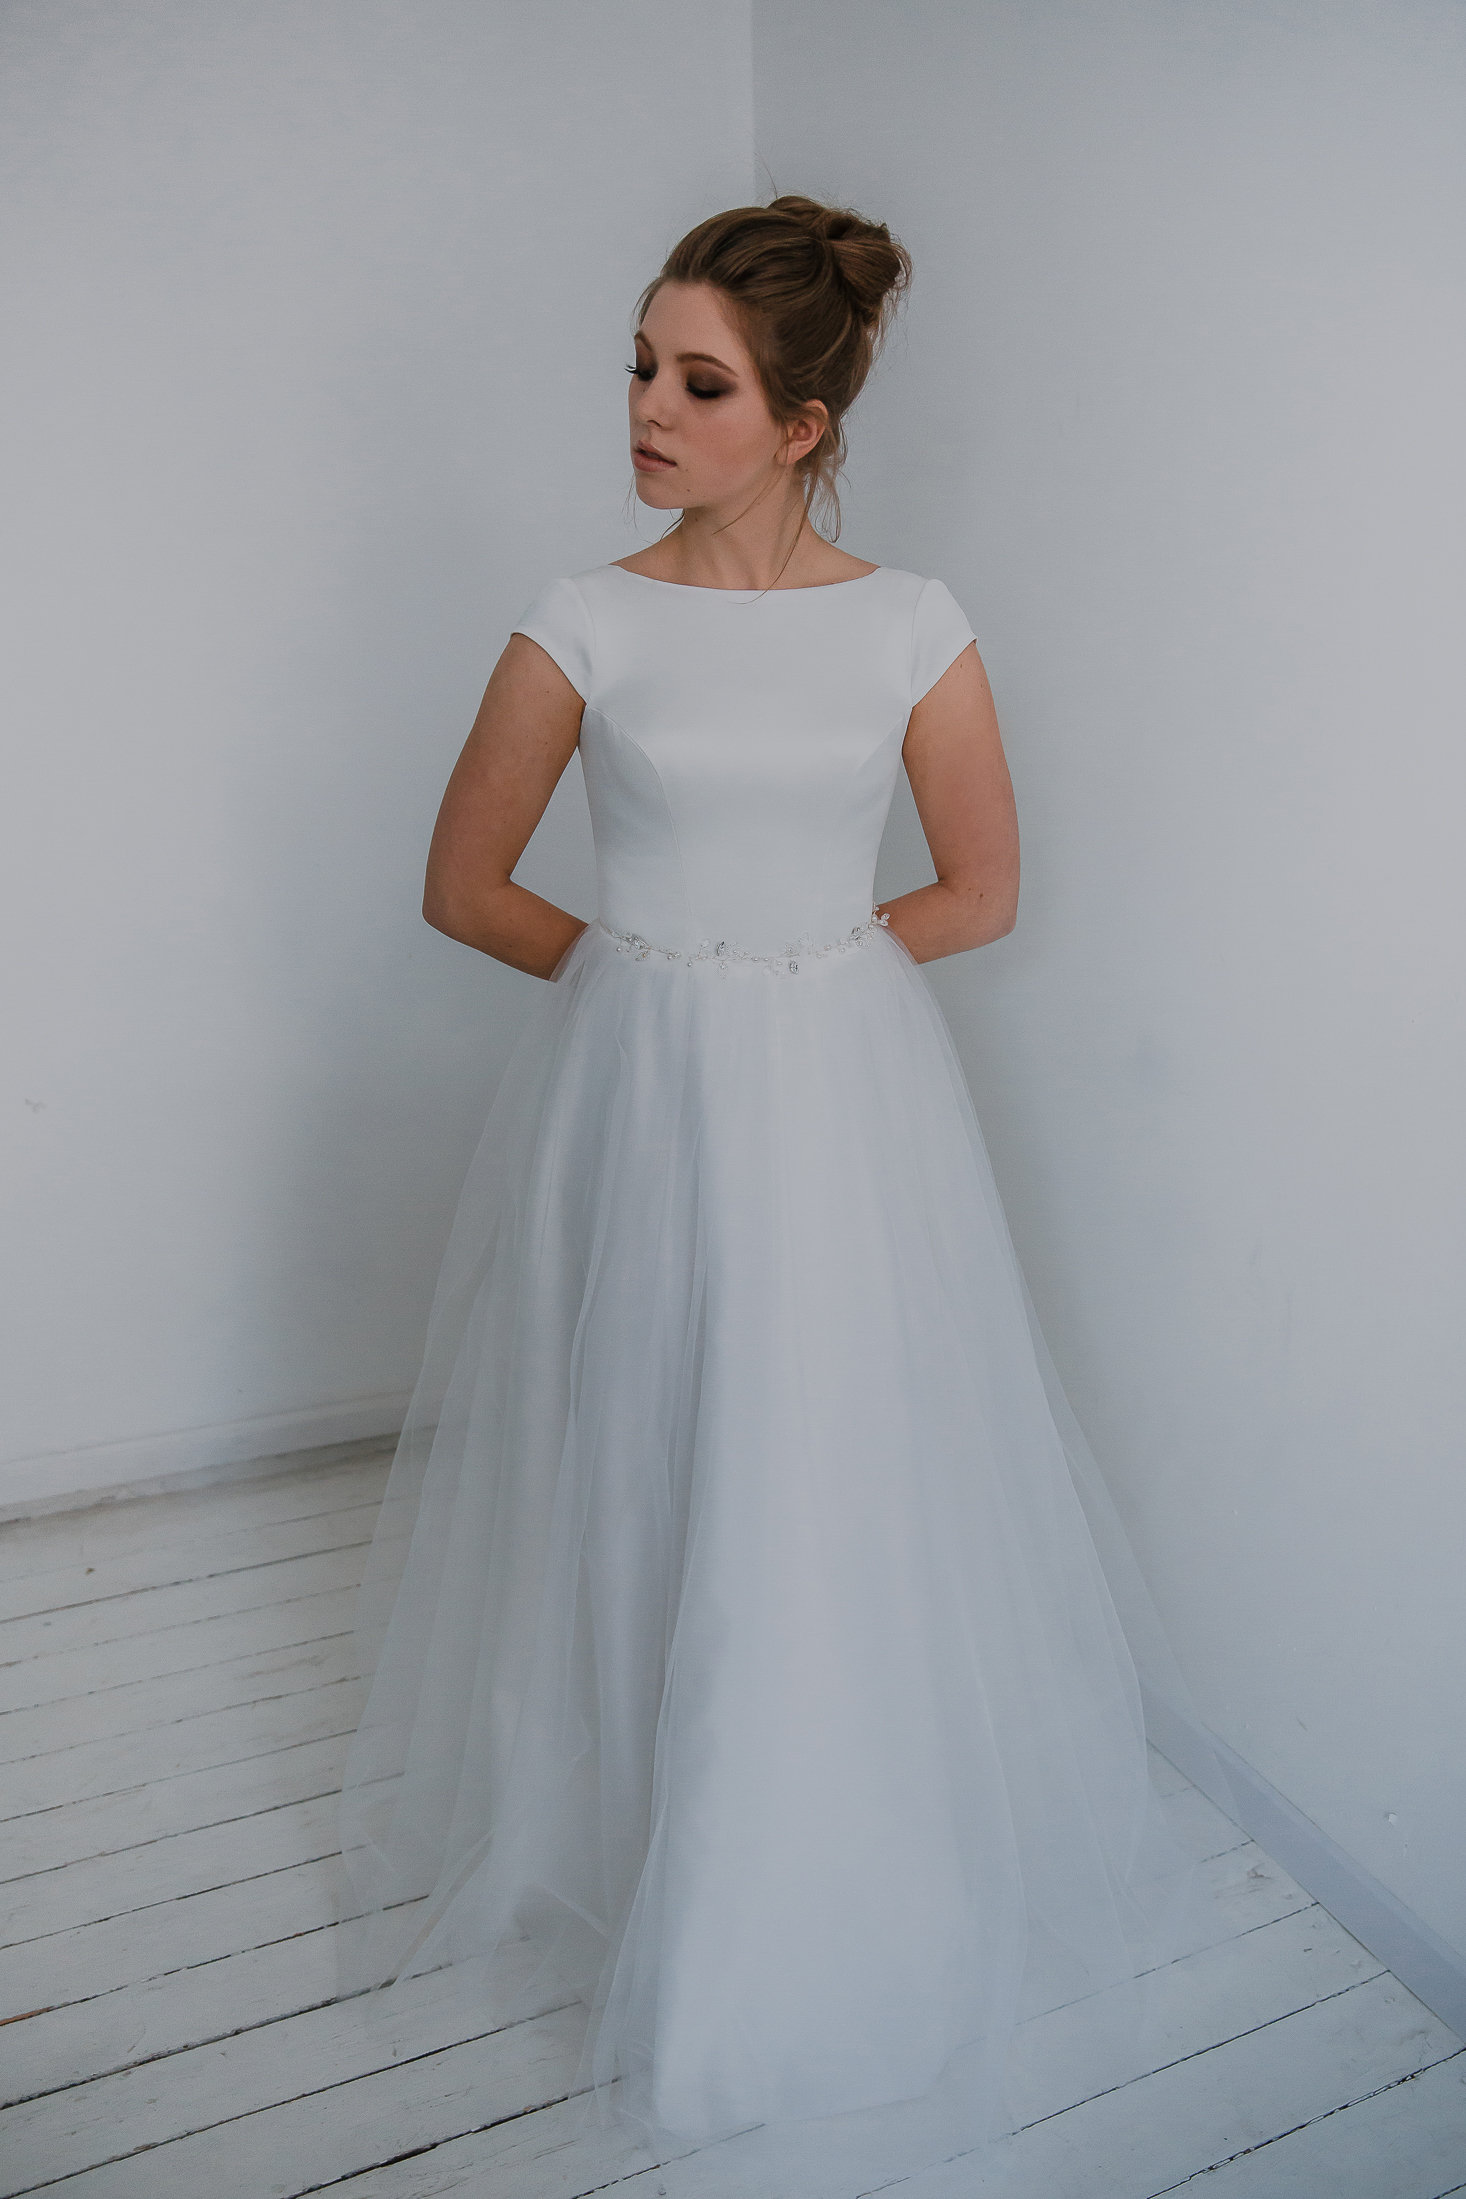 Ivory wedding dress with tulle skirt and silky top. Open back